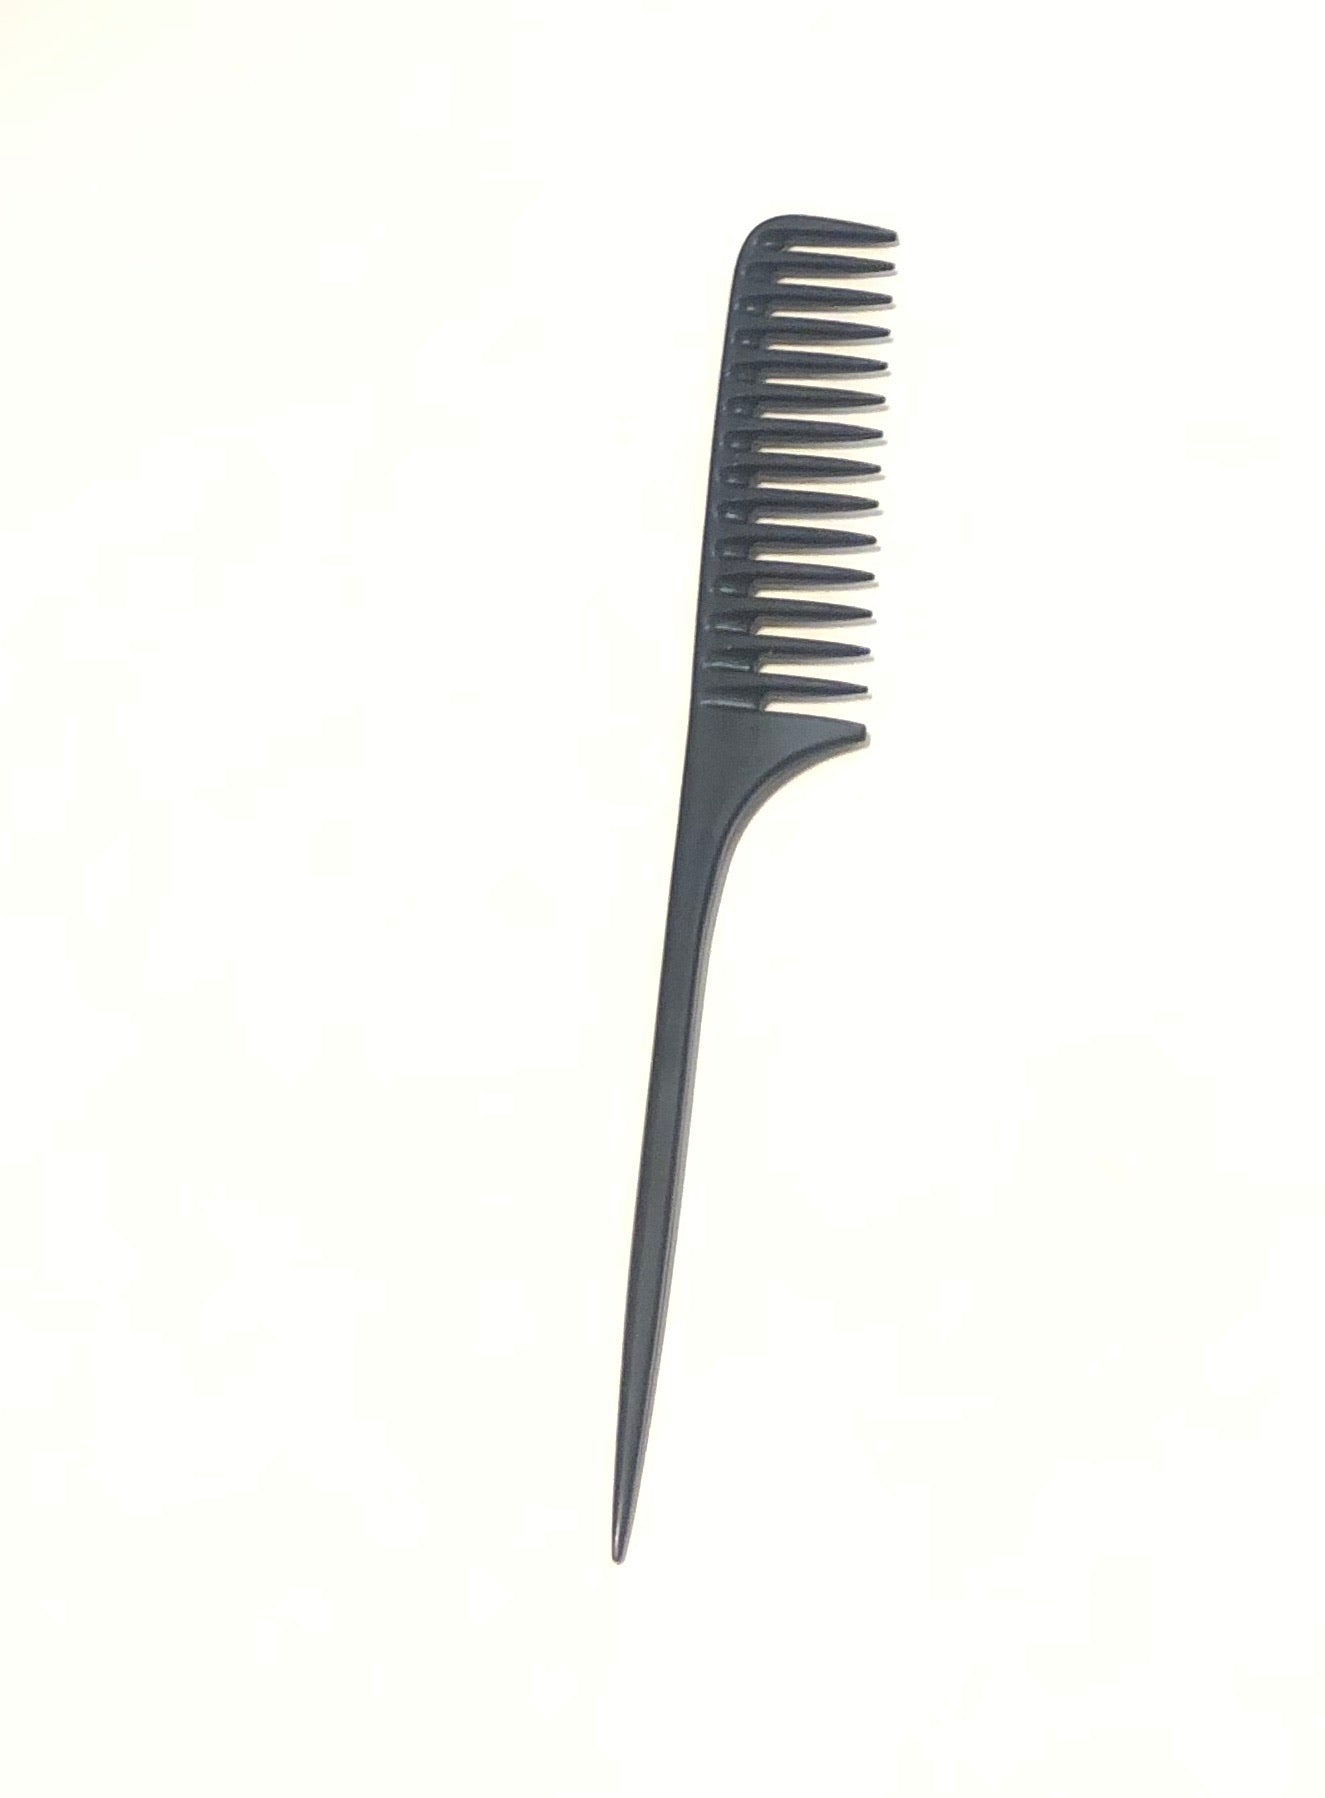 Large Rat Tail detangling comb